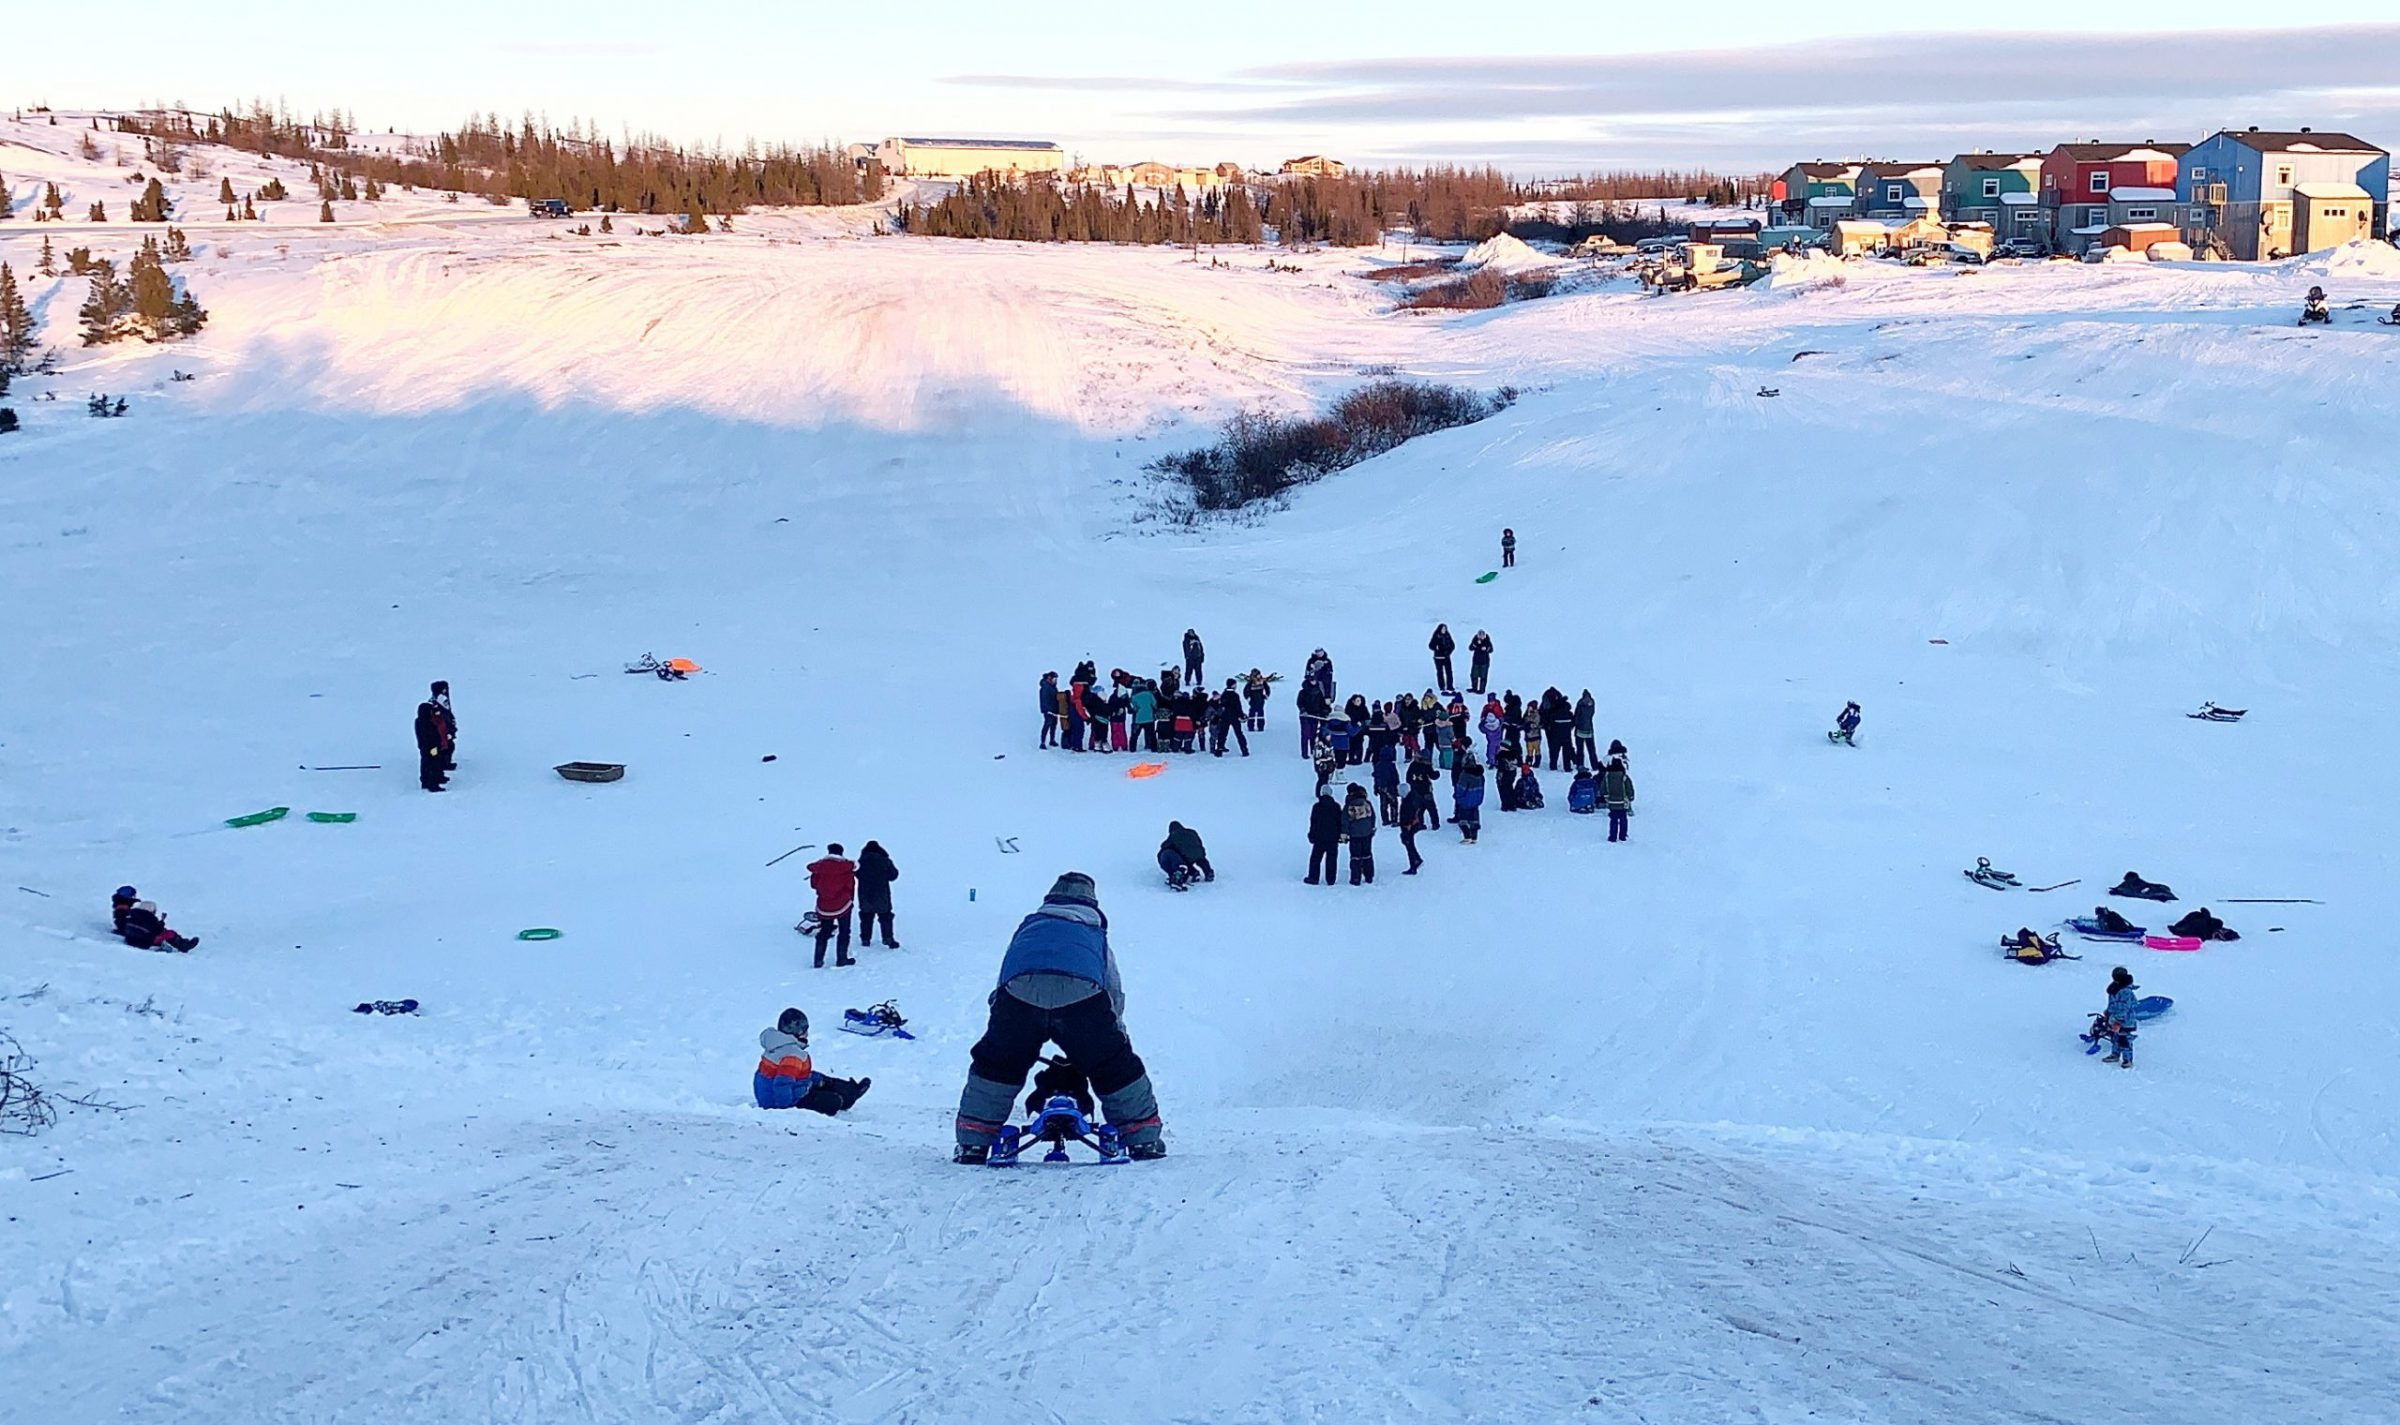 """Kuujjuaq children gathered Dec. 30 to toboggan and play games like tug-of-war organized by the northern village's education committee. """"It was beautiful to witness many kids have fun and laugh,"""" said committee member Lavinia Flaherty. (Photo by Malaya Qaunirq Chapman)"""